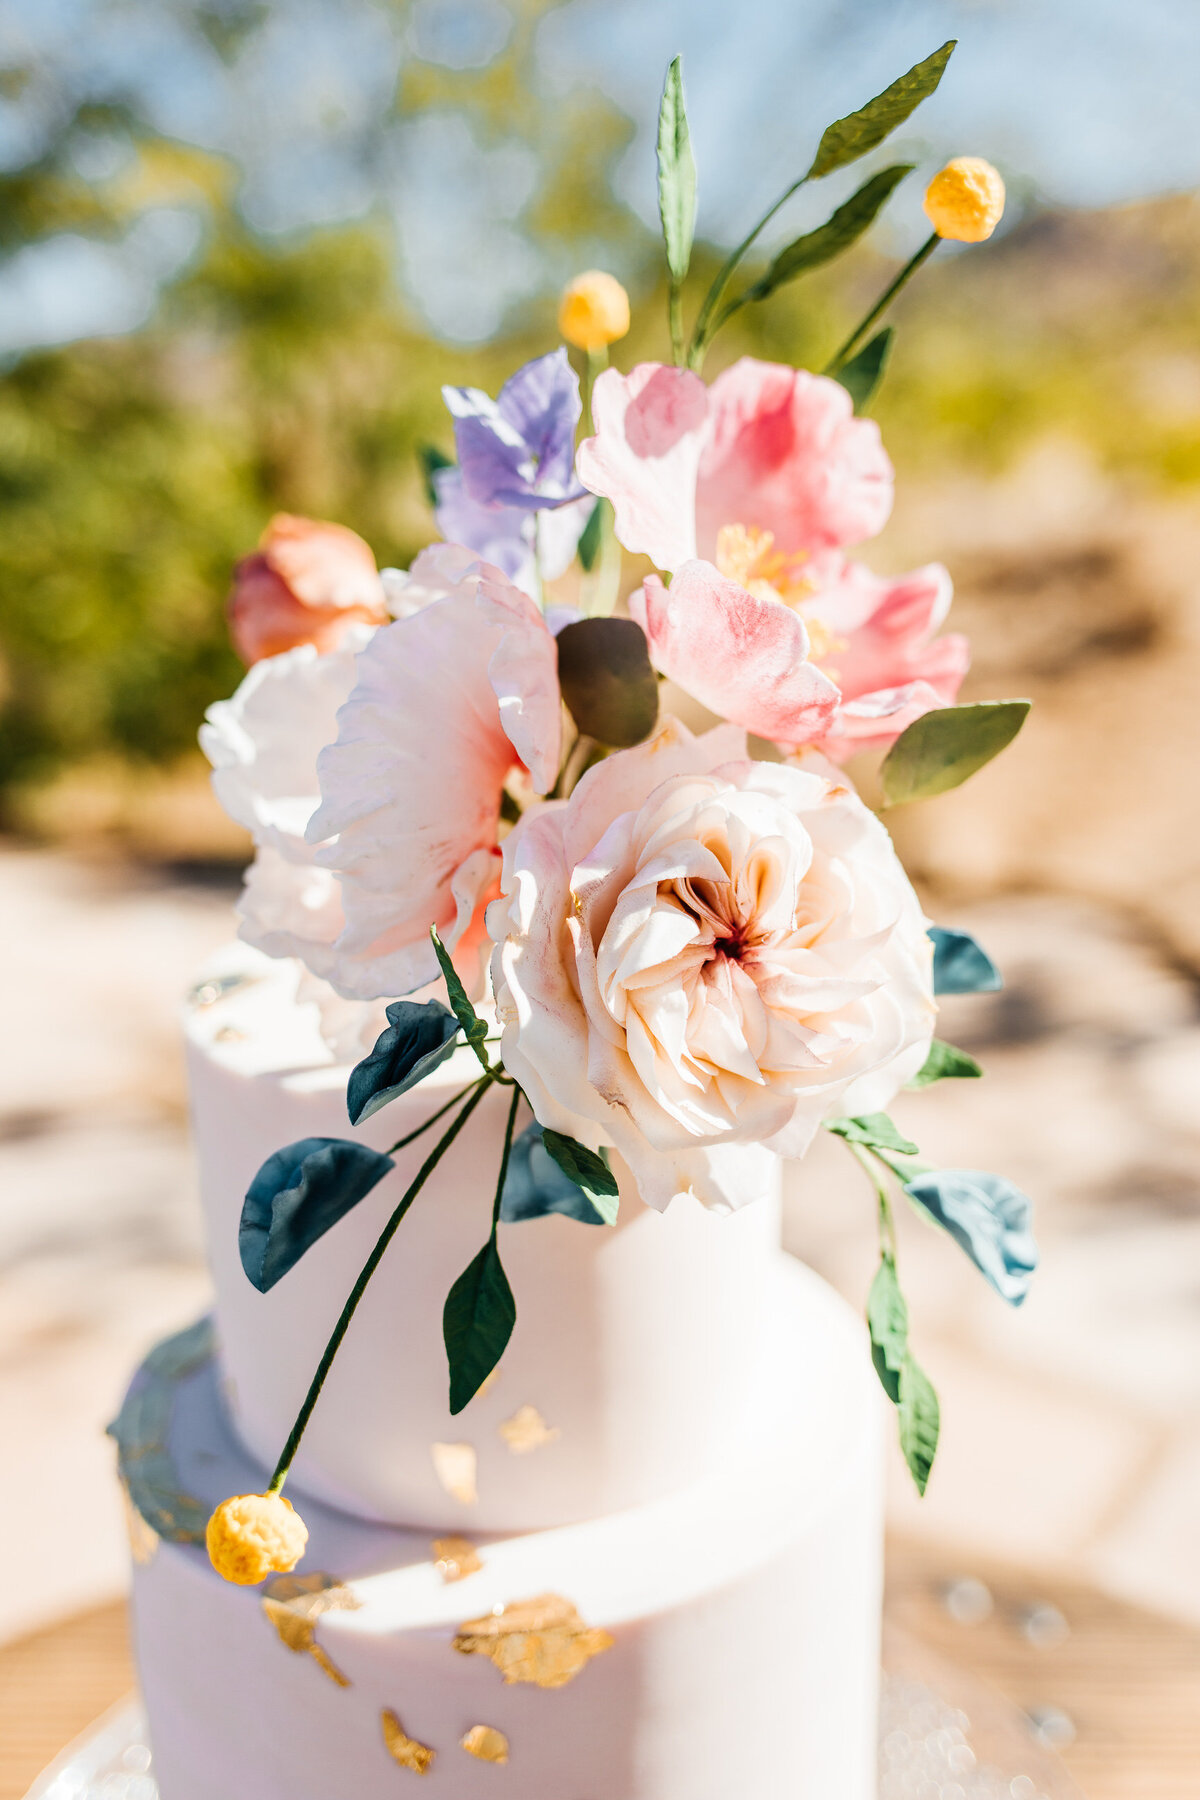 colorful-joshua-tree-elopement-inspiration-joshua-tree-wedding-photographer-palm-springs-wedding-photographer-erin-marton-photography-6